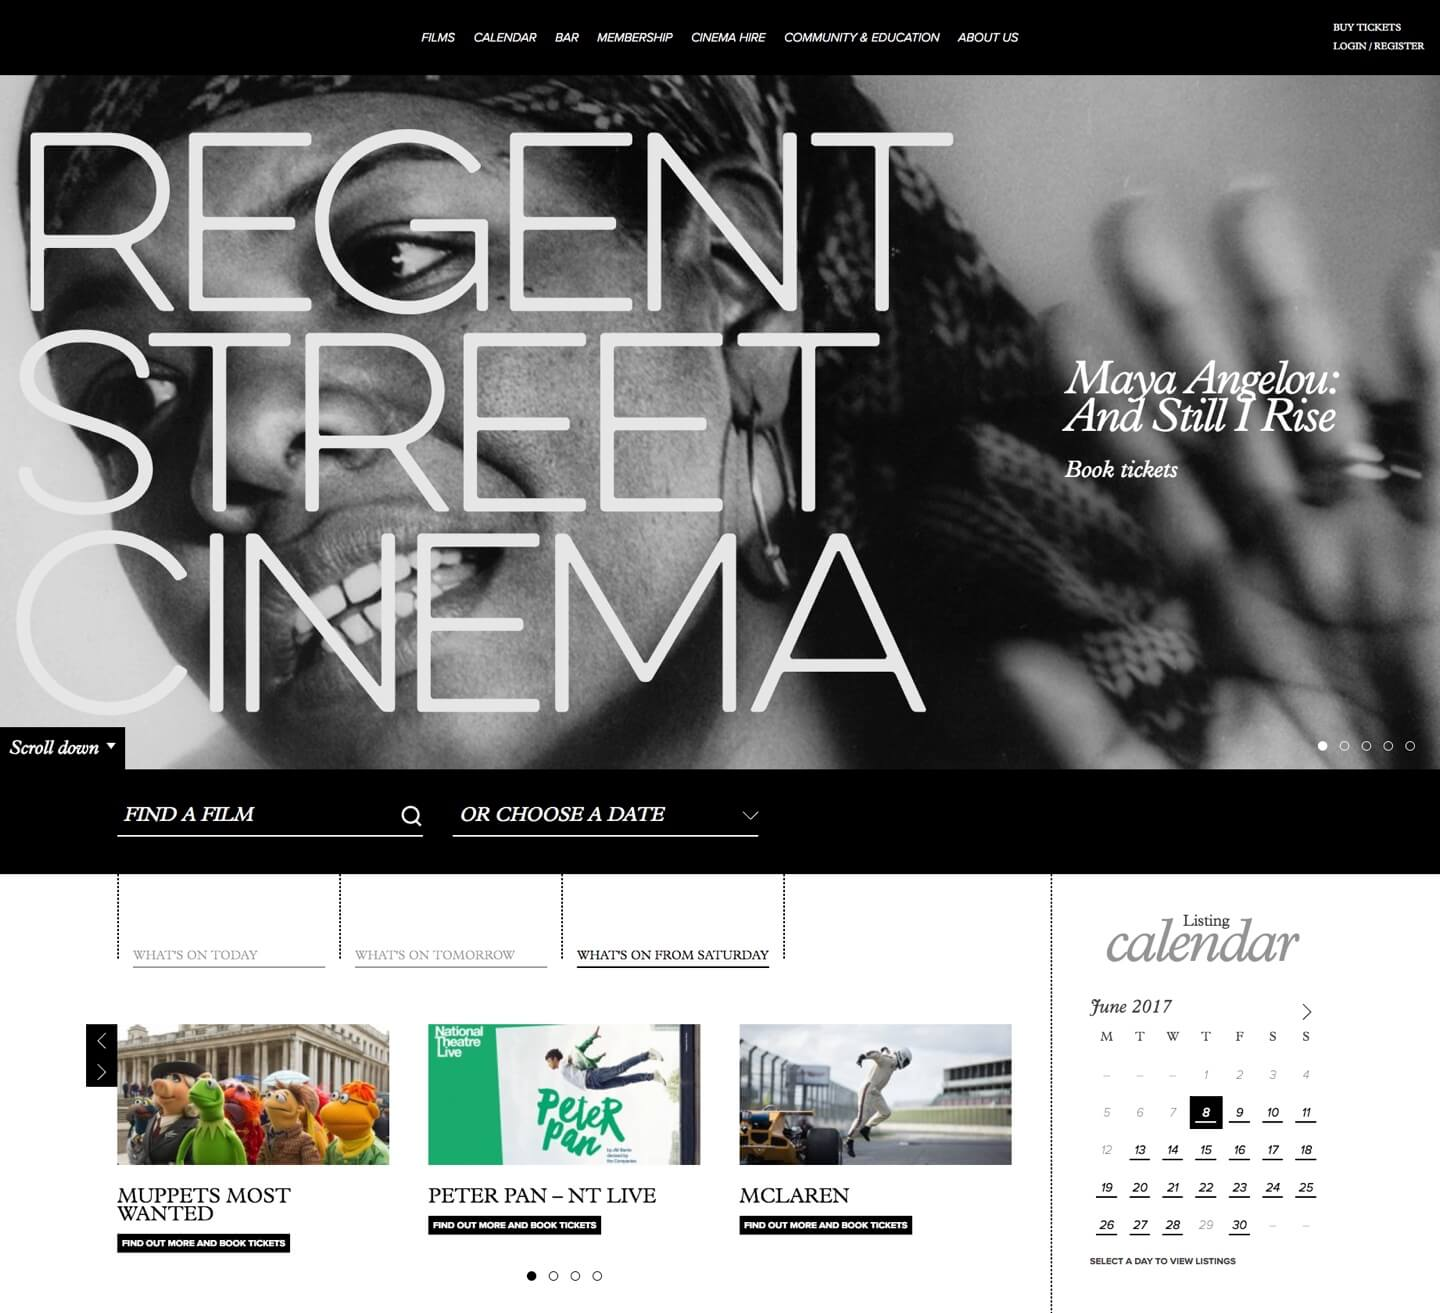 Regent street cinema bookings page